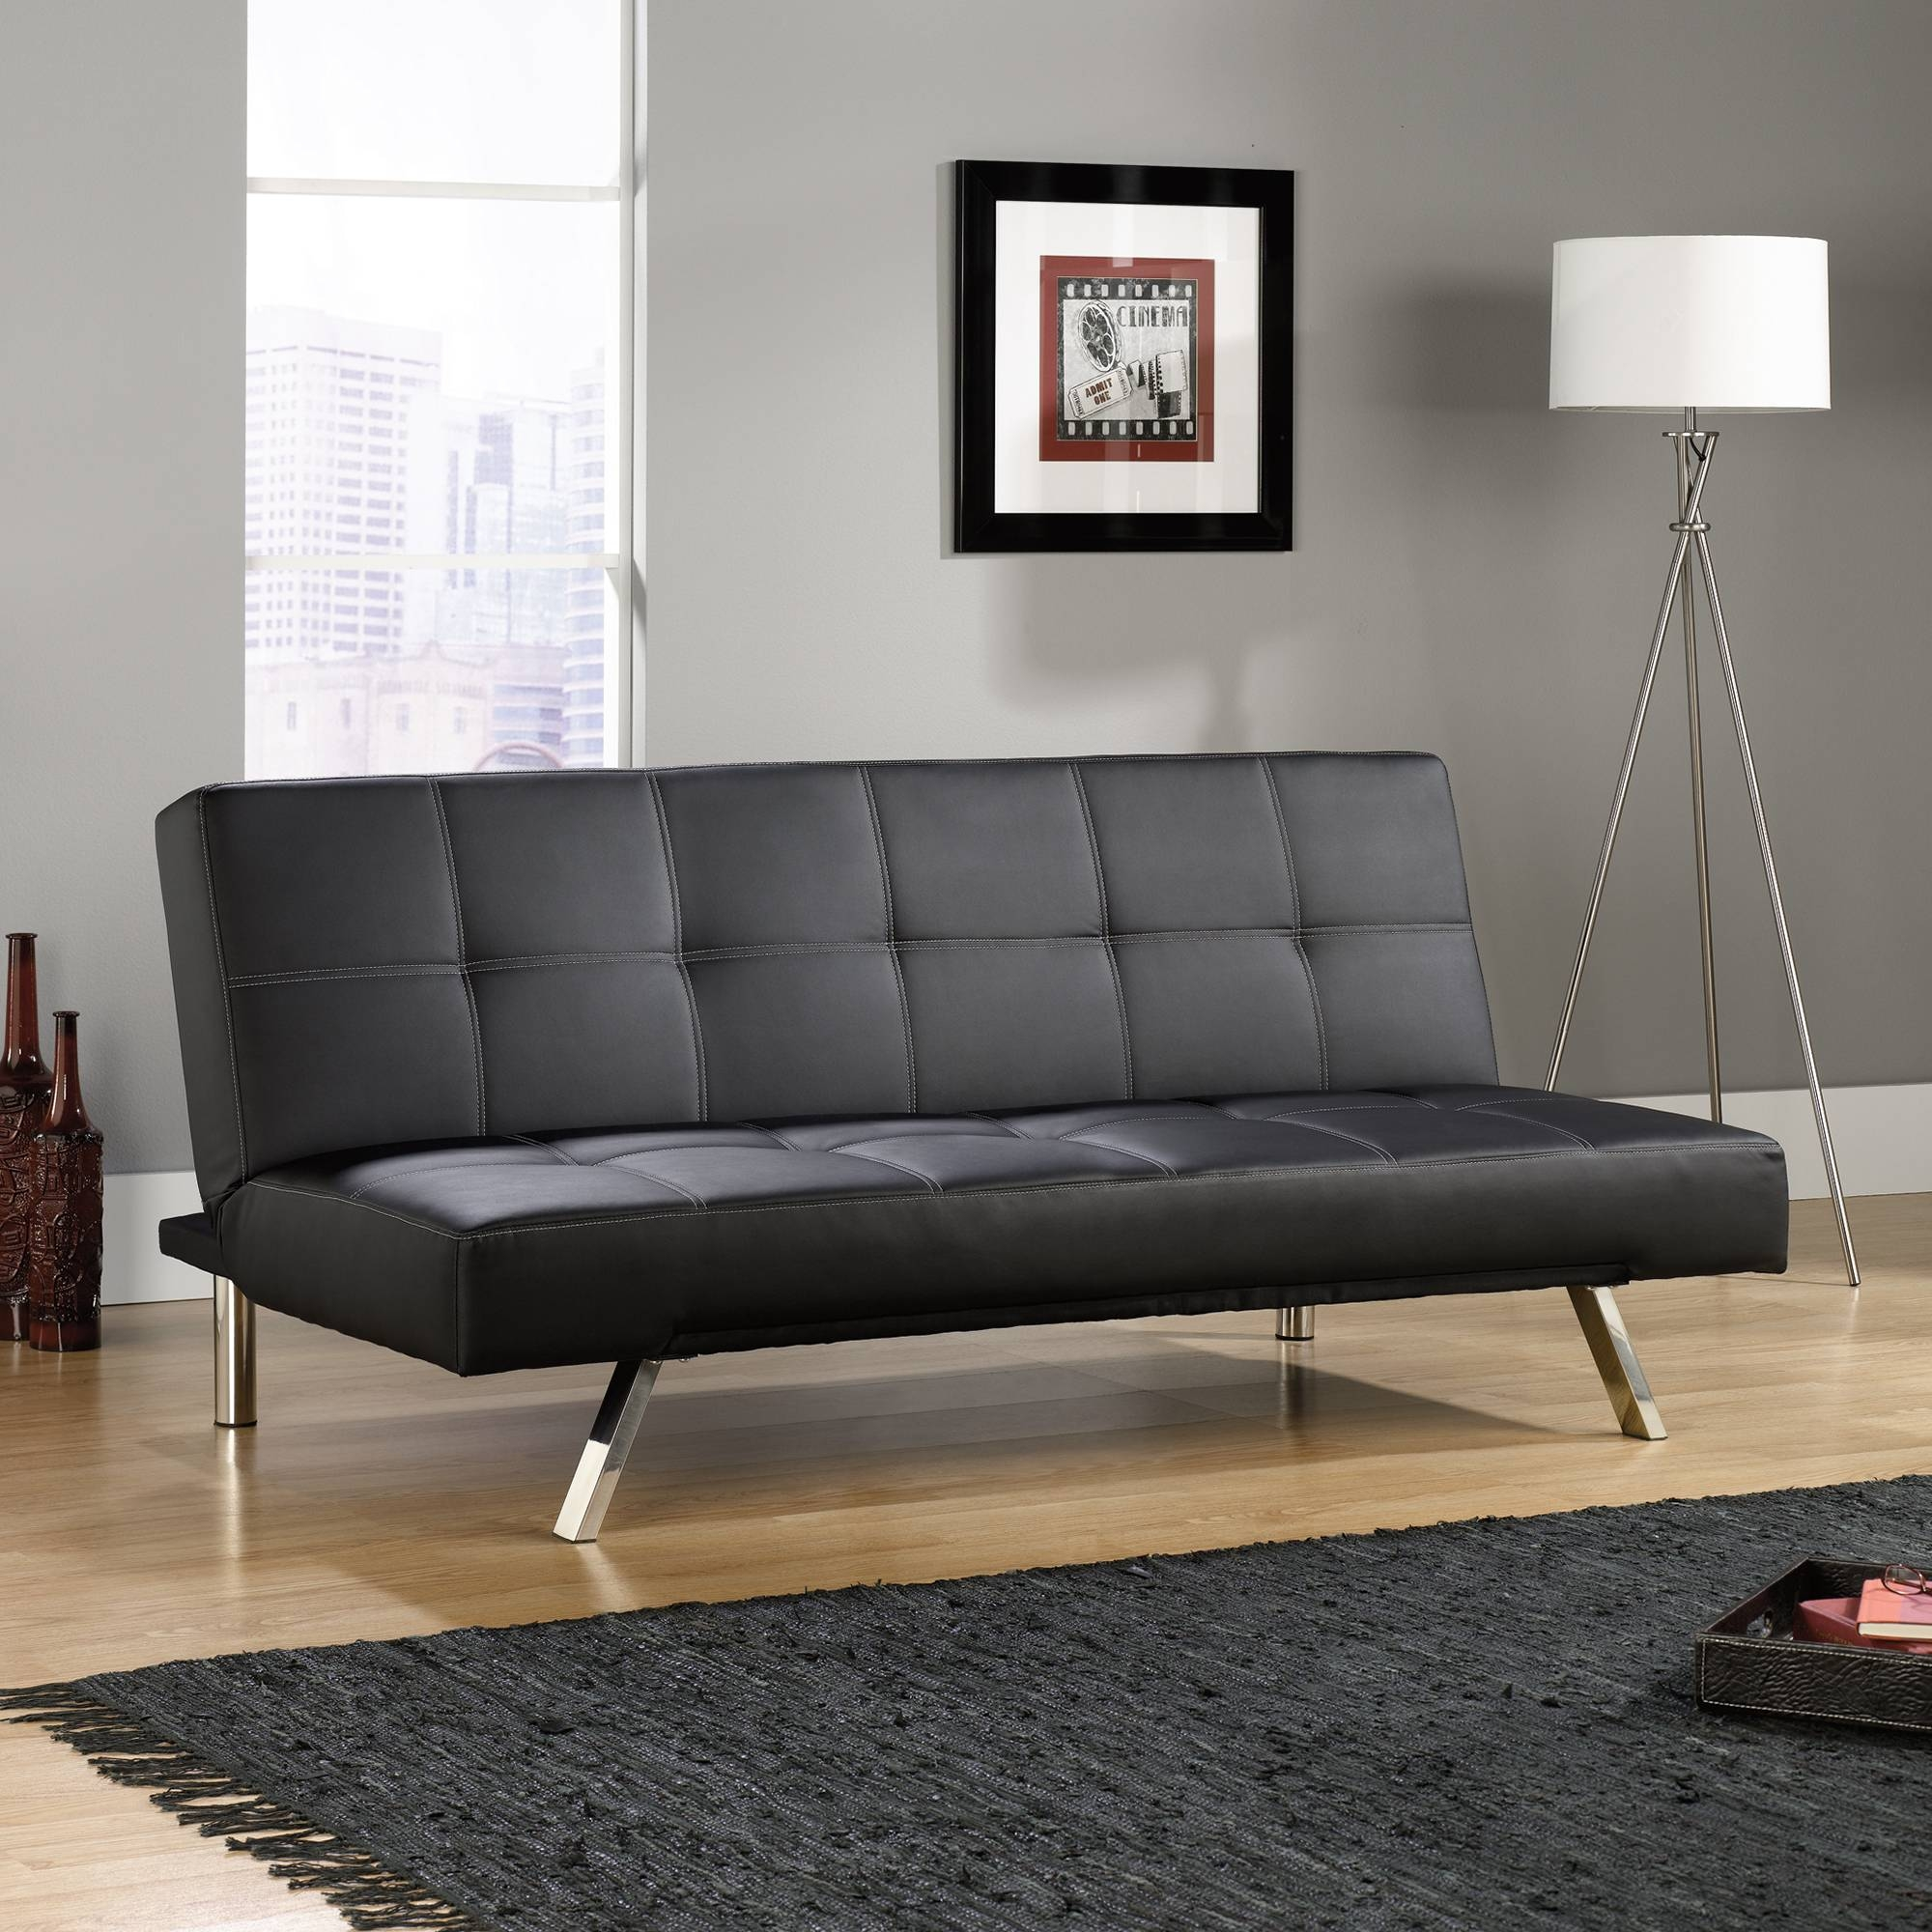 Sofa Convertible | Crash Sofa Convertible | 415078 | Sauder intended for Sofa Convertibles (Image 25 of 30)